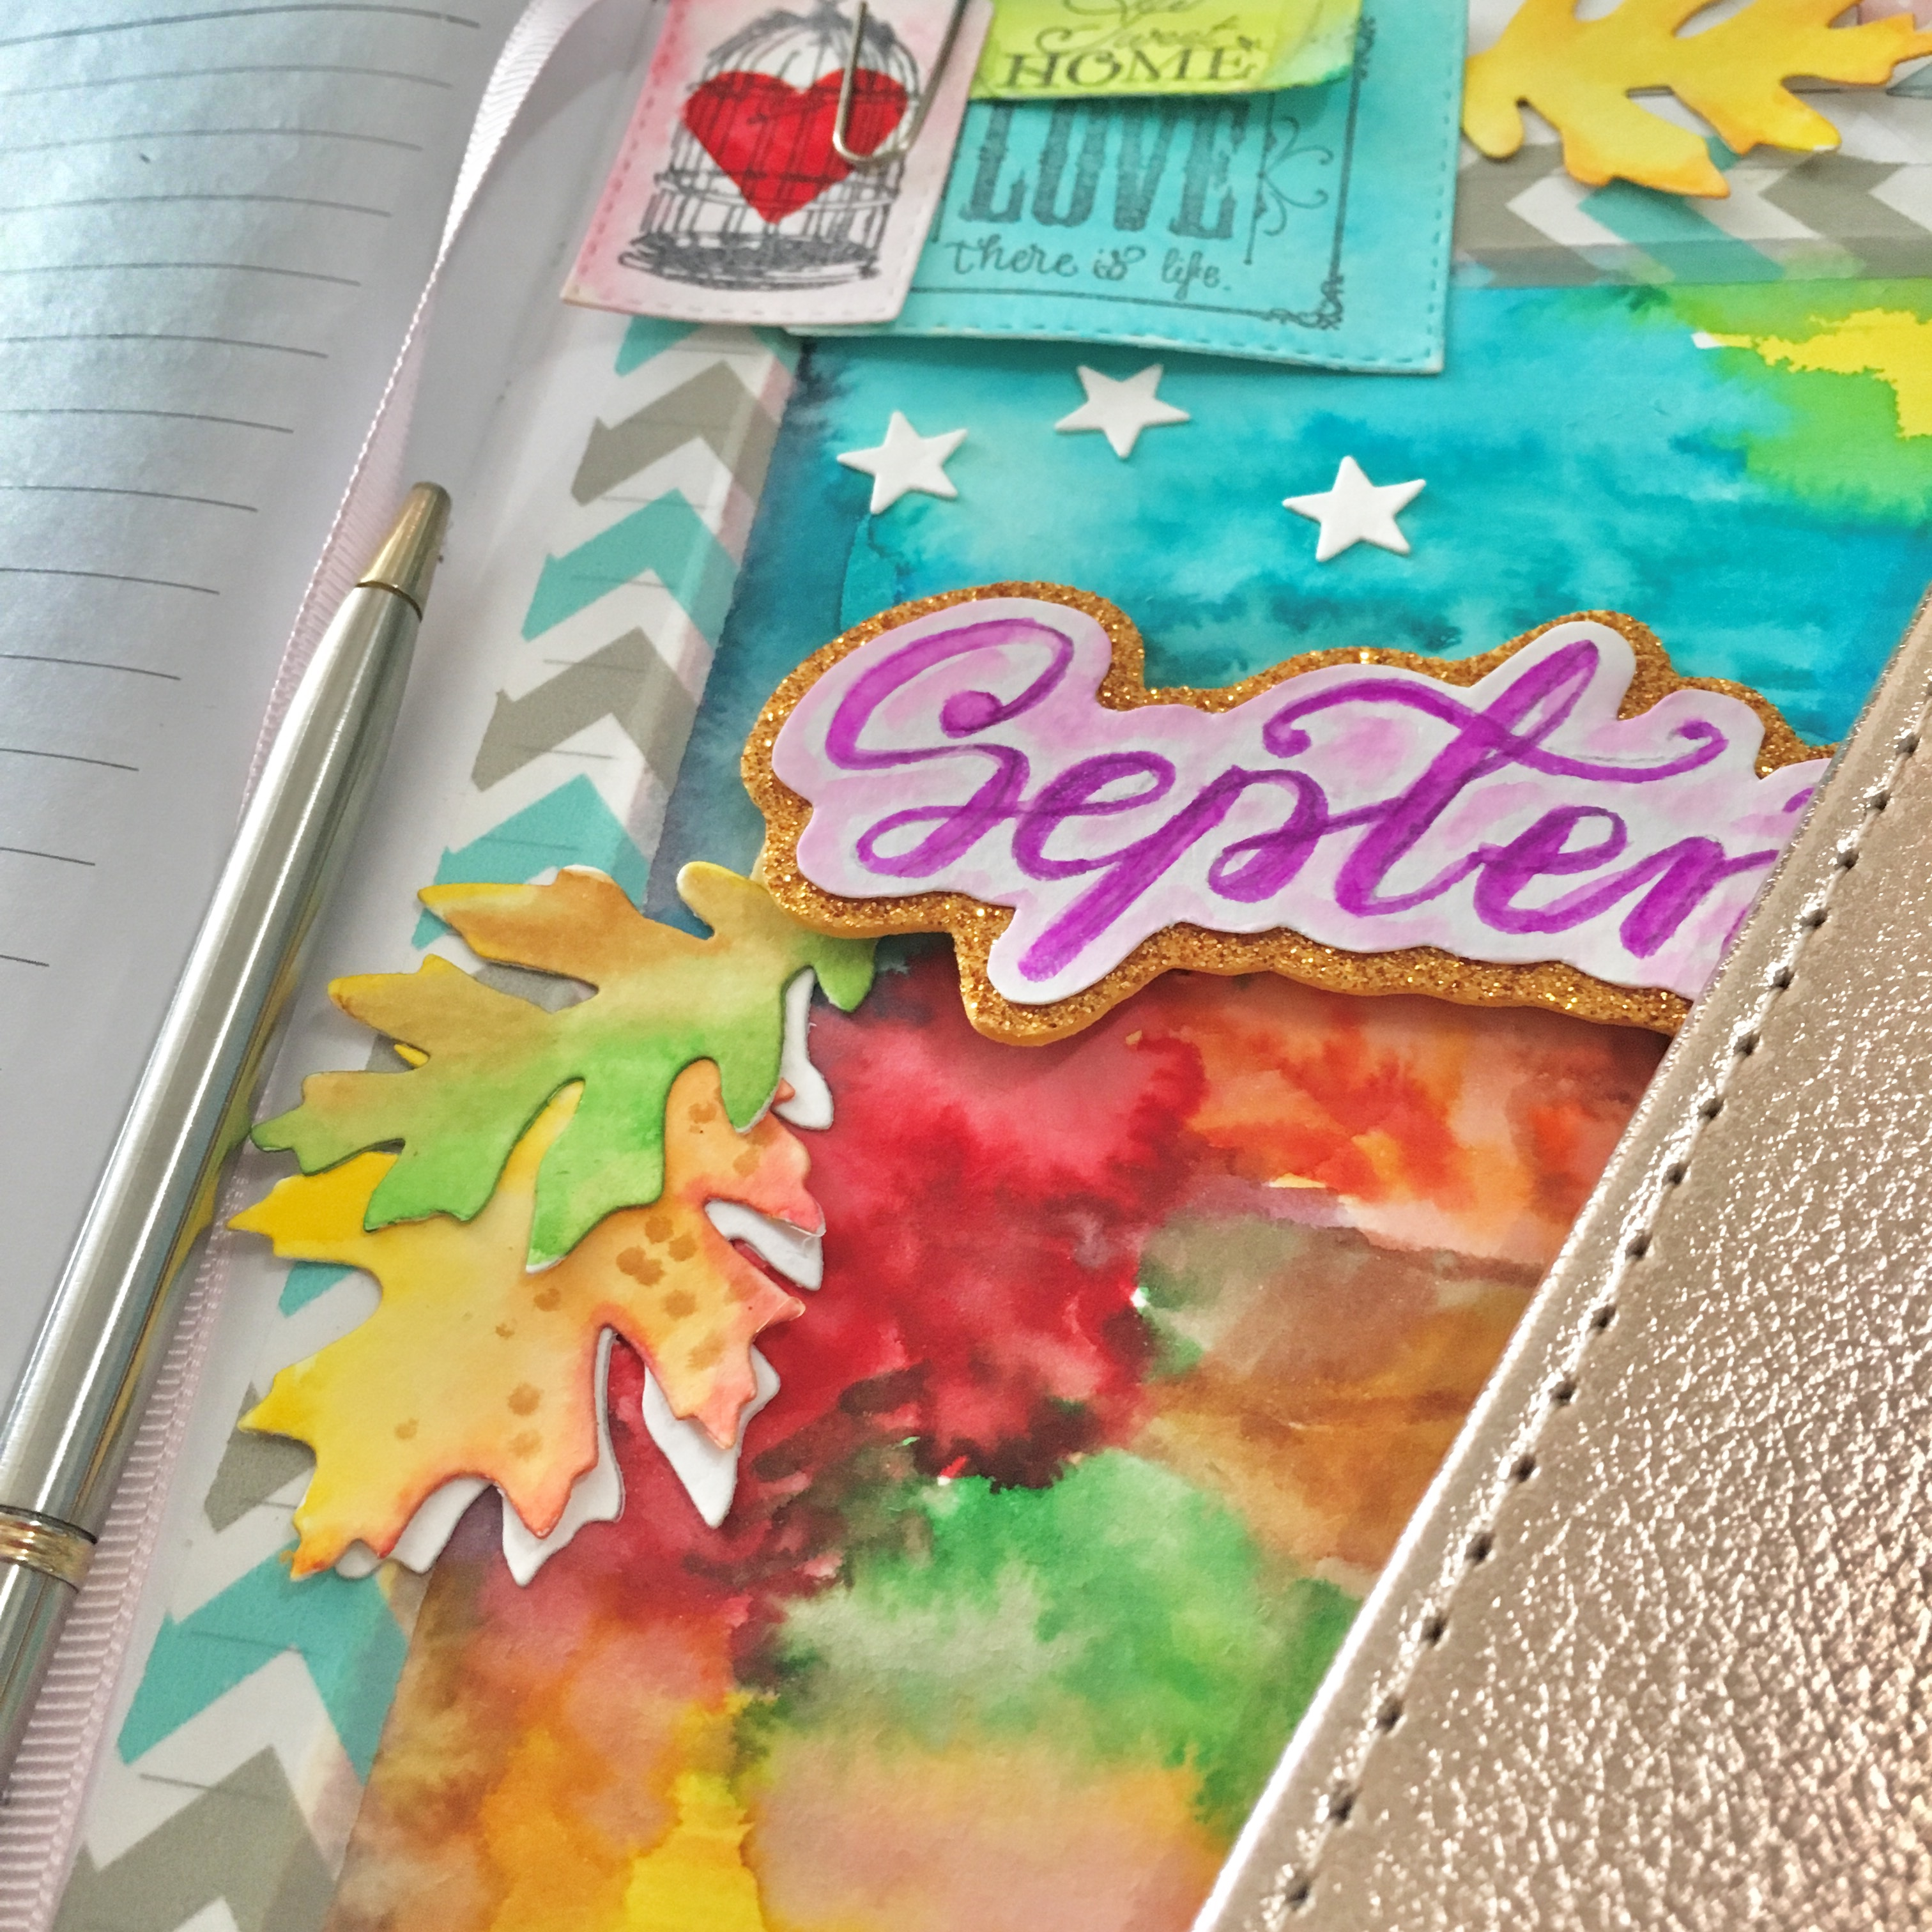 colourful (blue, orange, yellow, red, pink, purple) title page of bullet journal. The sign is September - in purple. There are some glued elements like white stars and yellow and green leaves